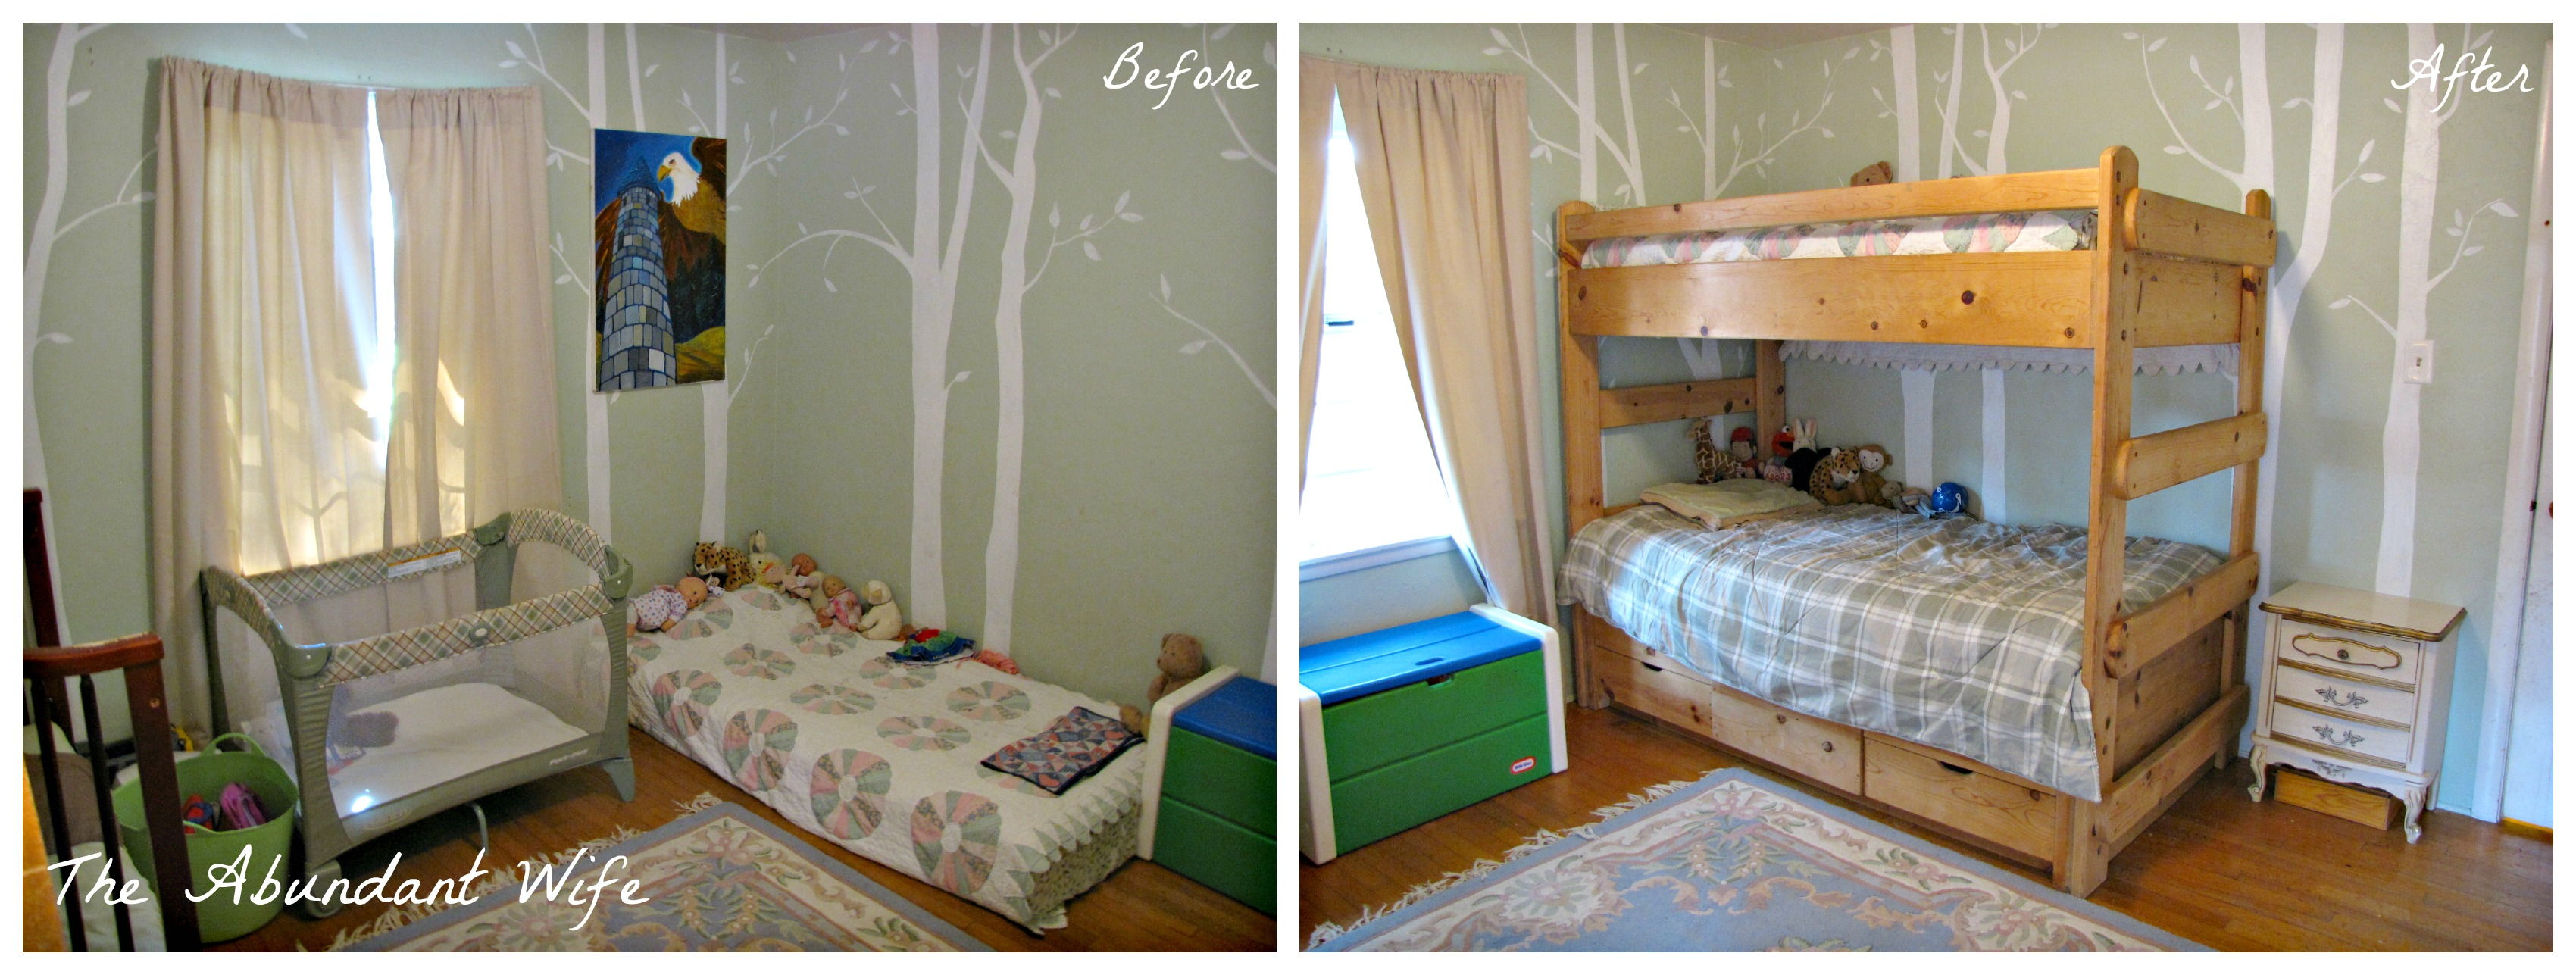 Luxury  Kids in a Bedroom Before u After New Bunk Beds